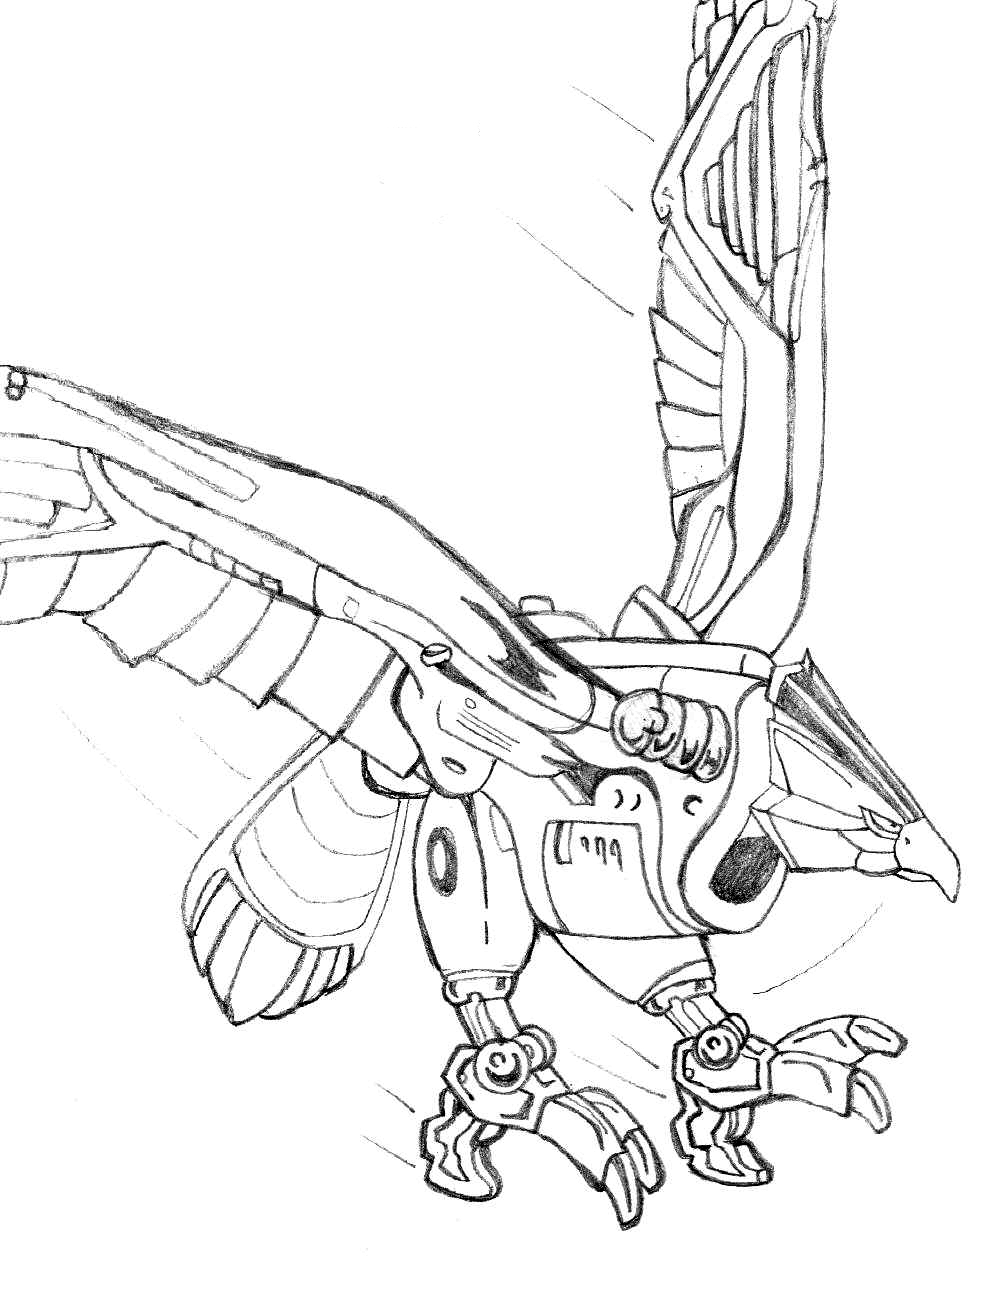 Power ranger step by step coloring pages for Mighty morphin power rangers coloring pages